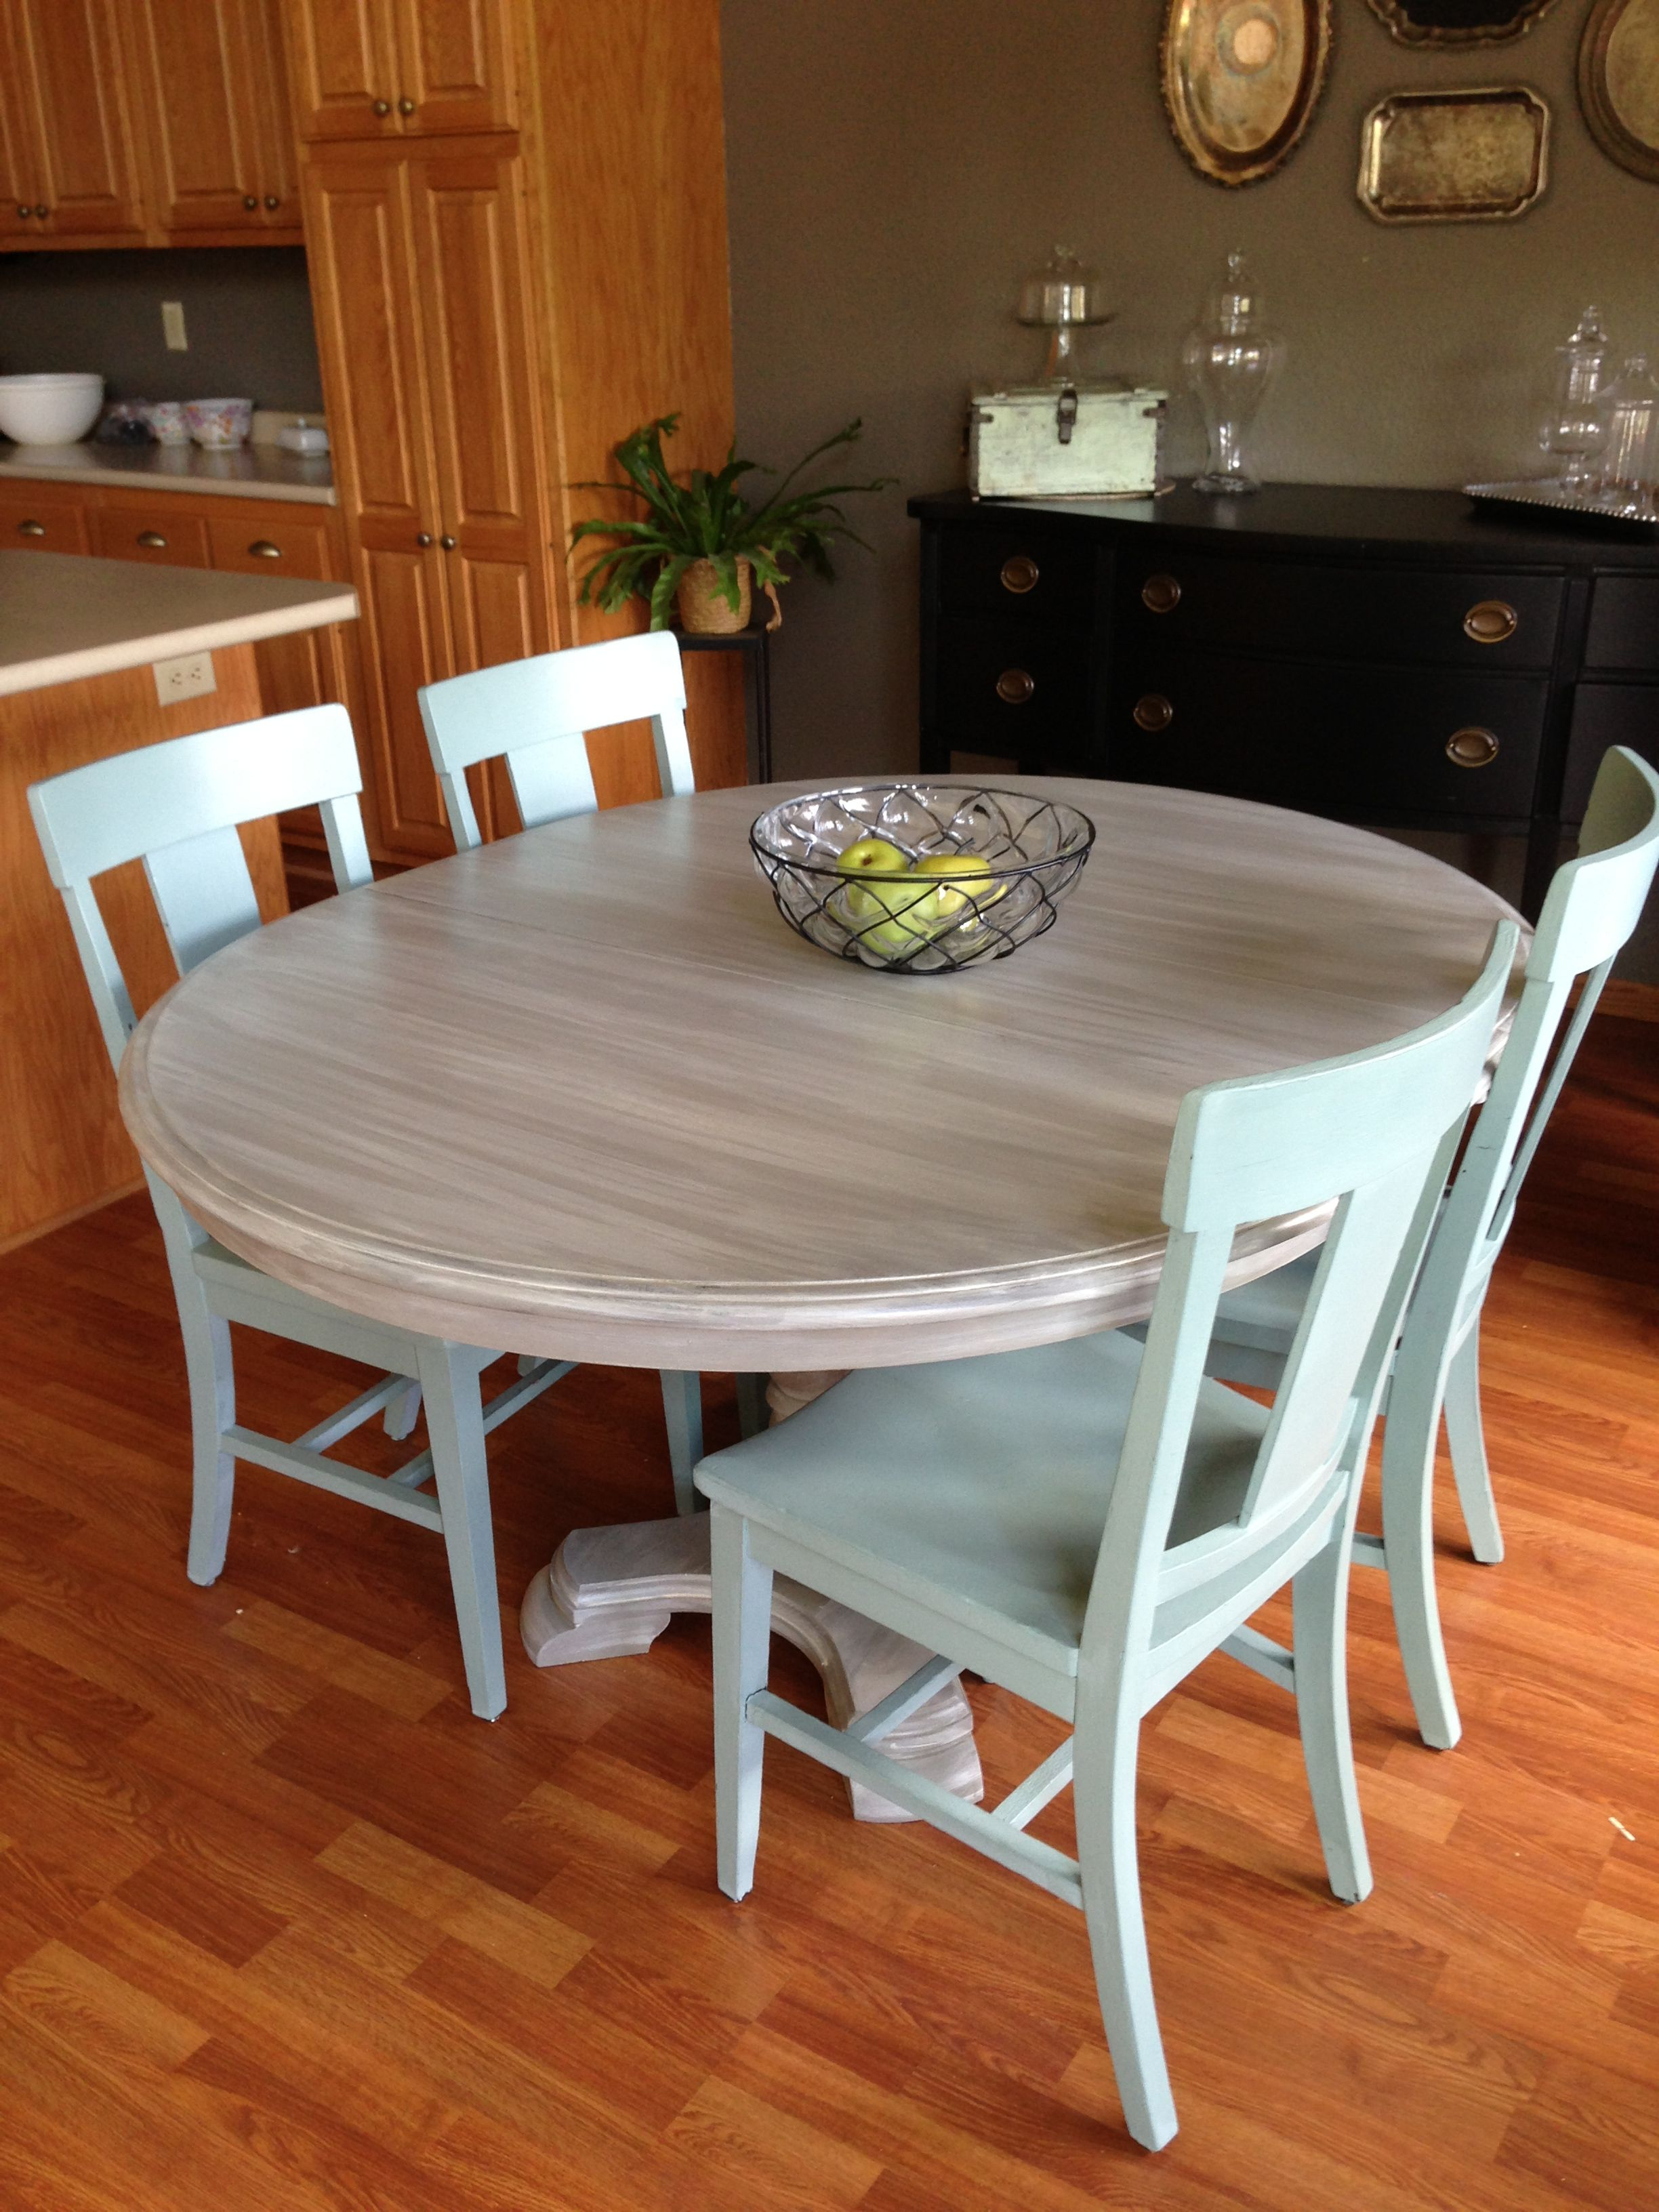 Kitchen Chairs And Table Makeover With Annie Sloan Chalk Paint Painted Kitchen Tables Kitchen Table Makeover Pedestal Kitchen Table